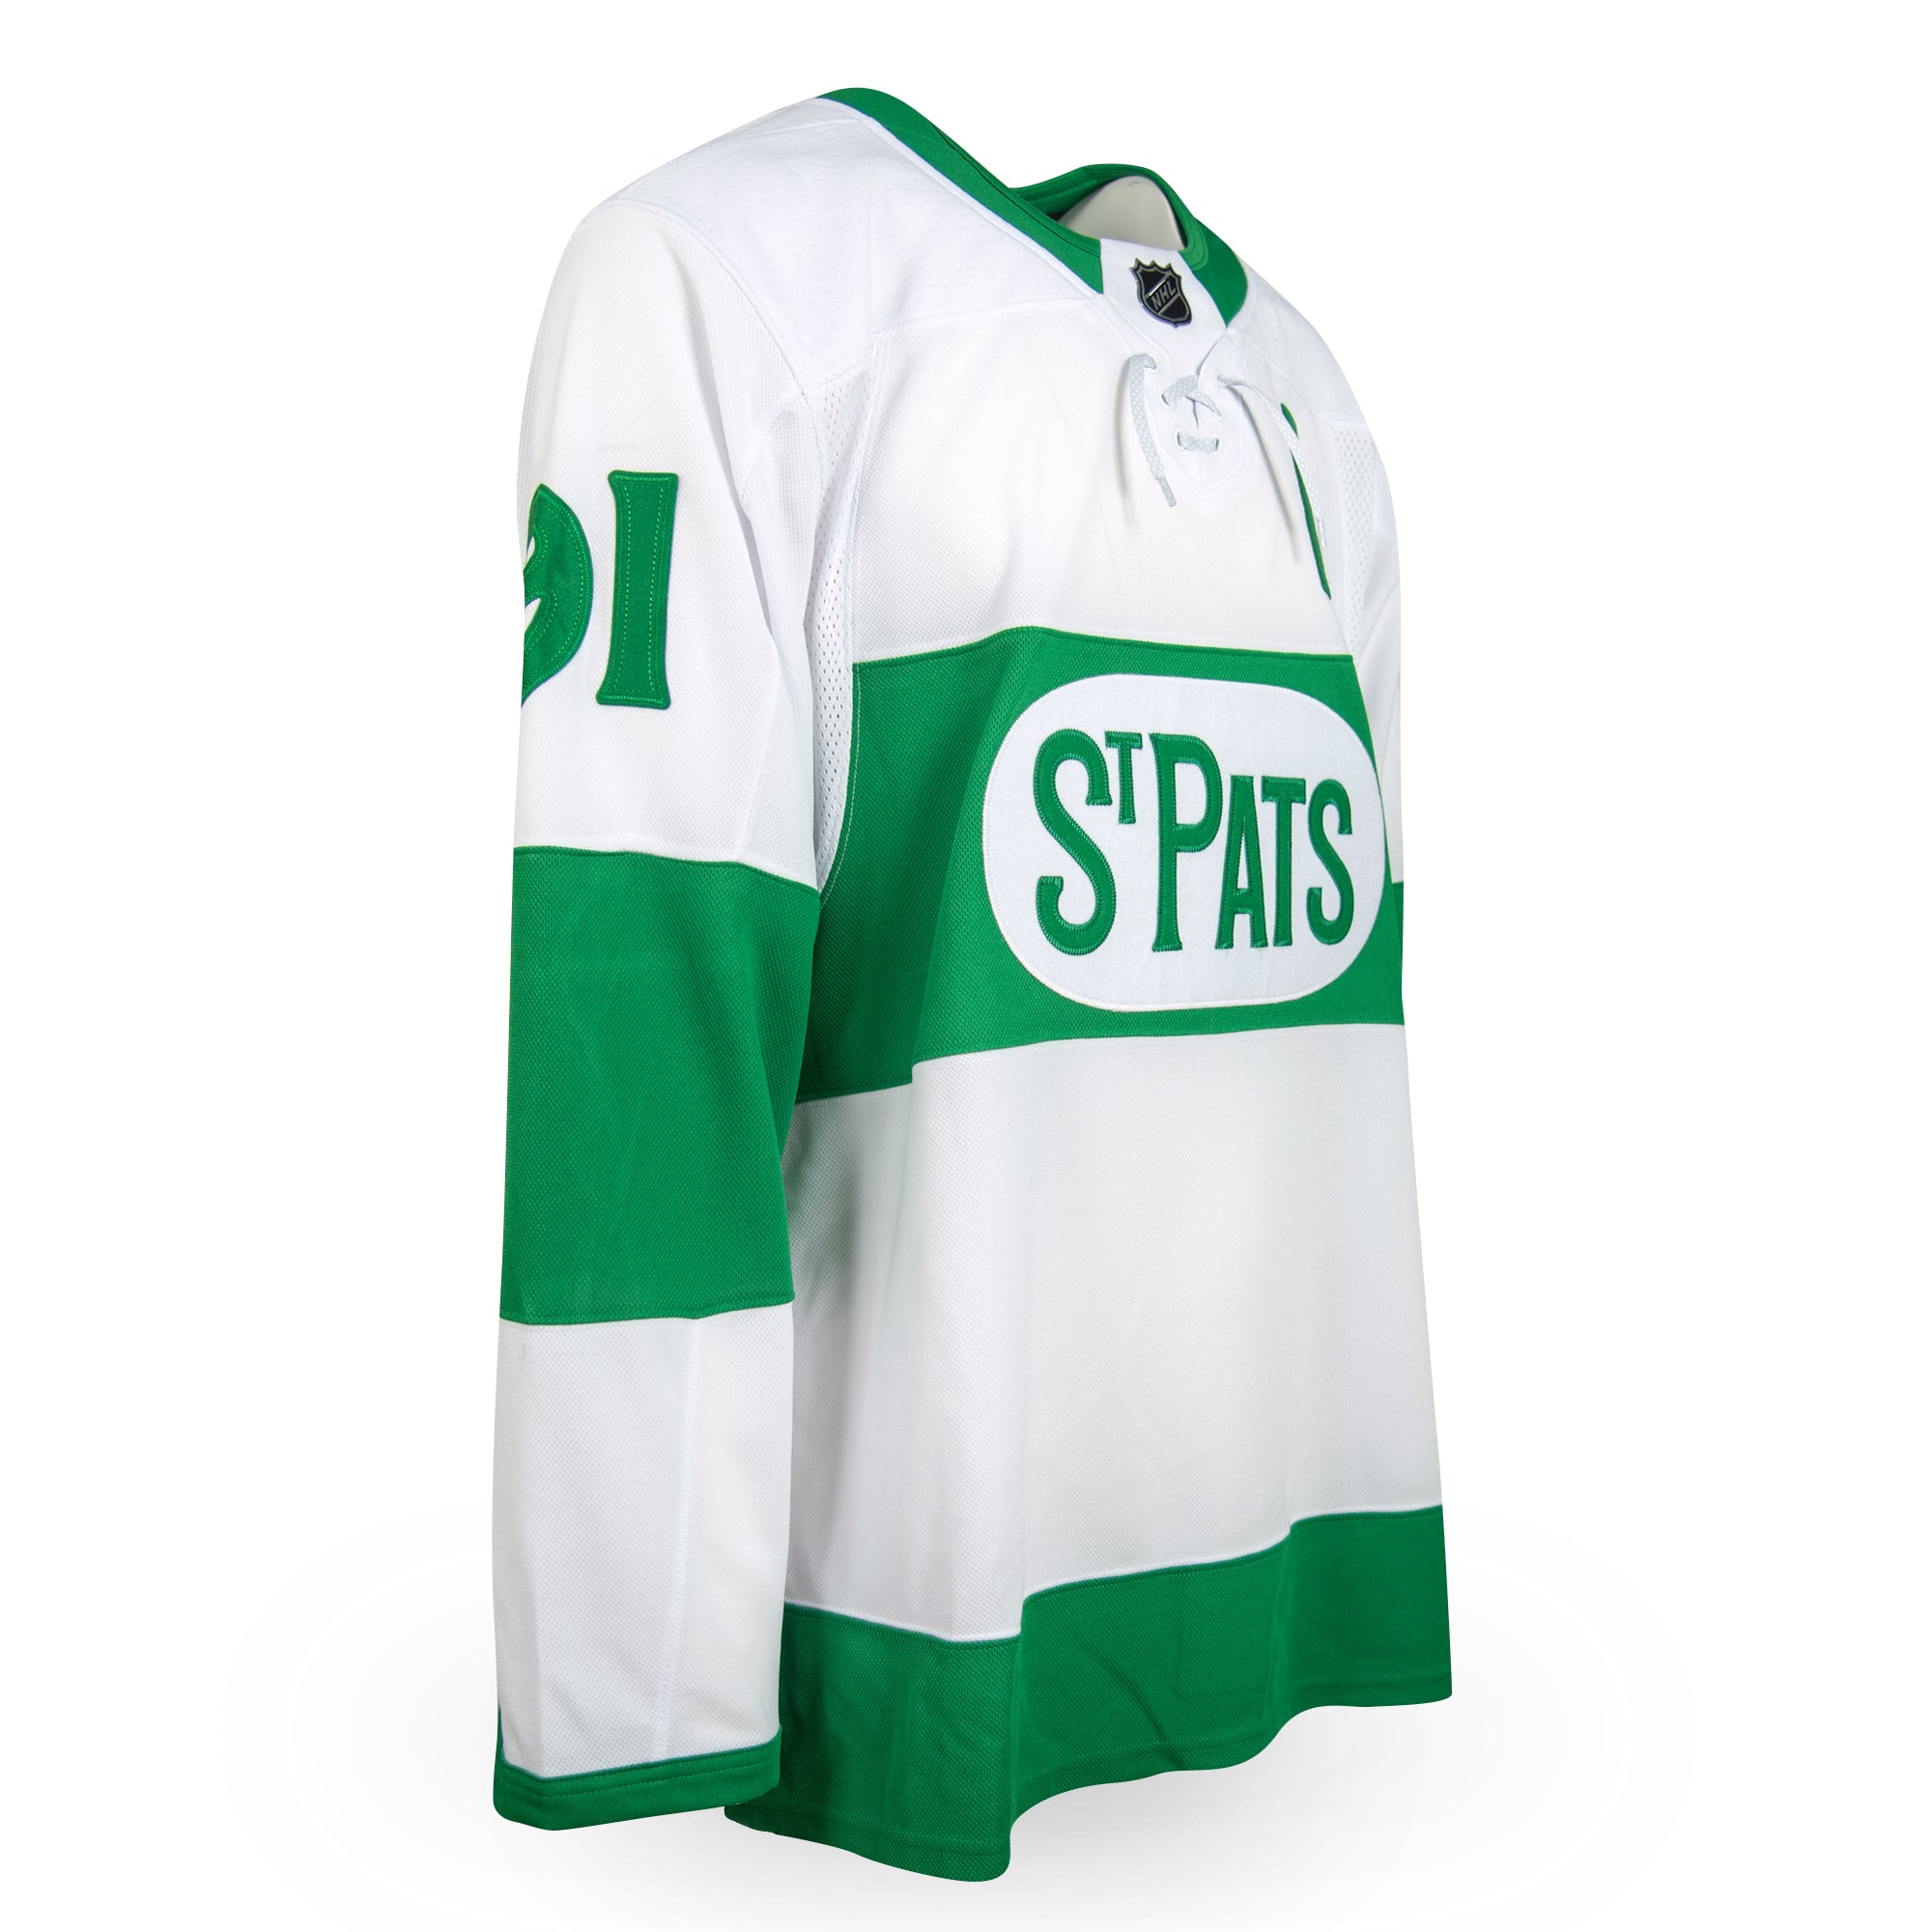 St. Pats Adidas Men's Authentic Jersey - TAVARES